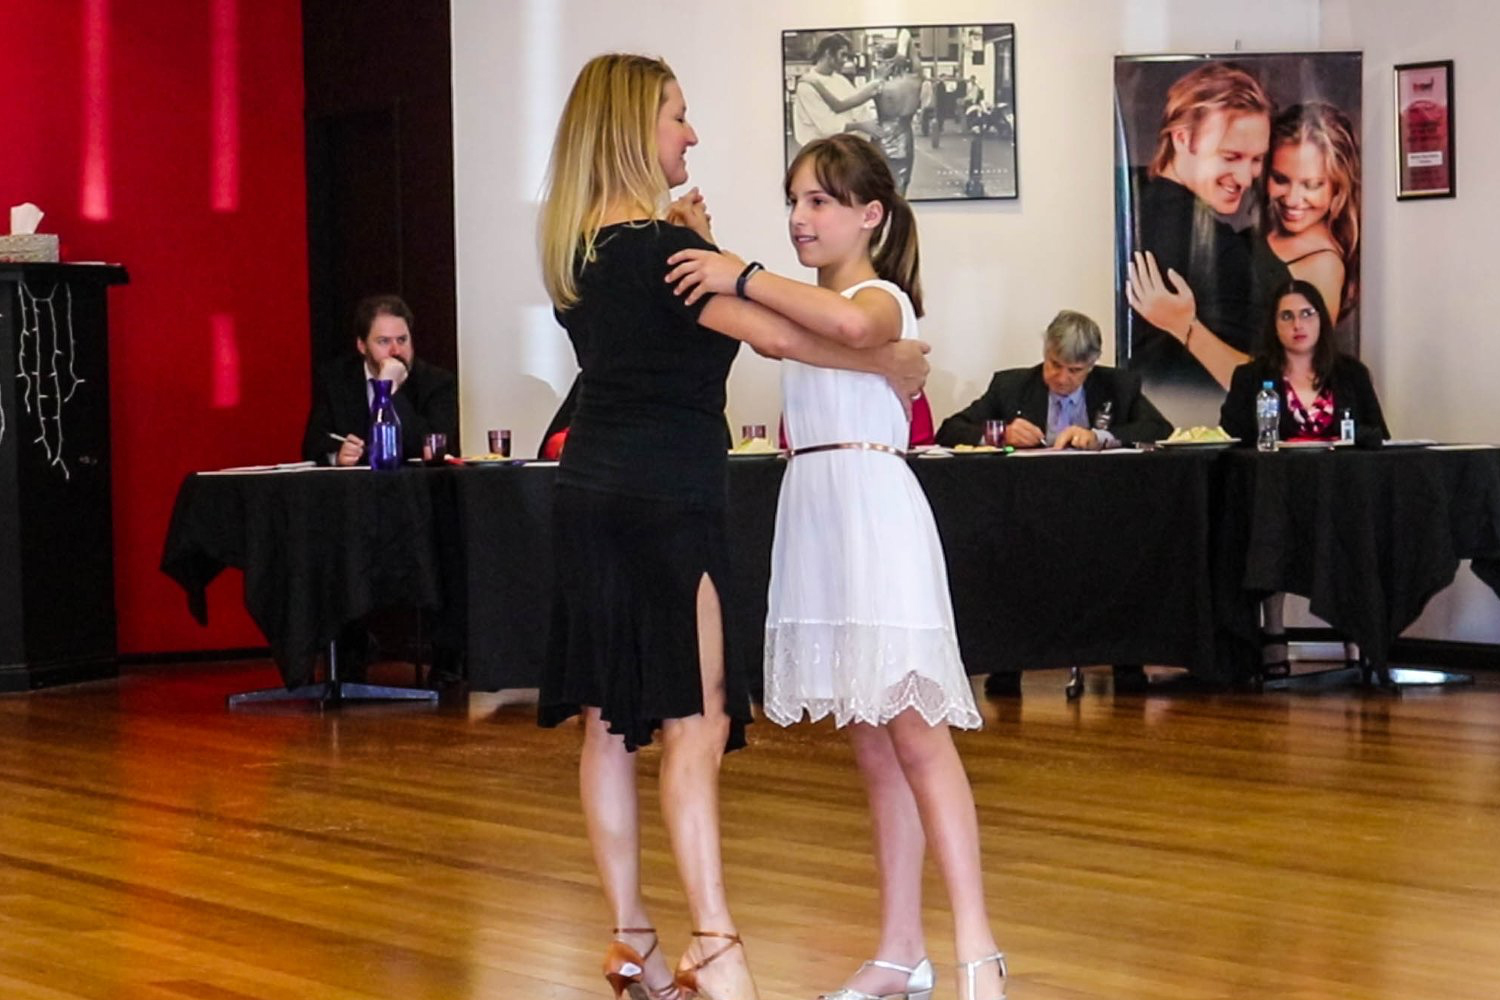 Kids can learn to dance at MarShere Tullamarine